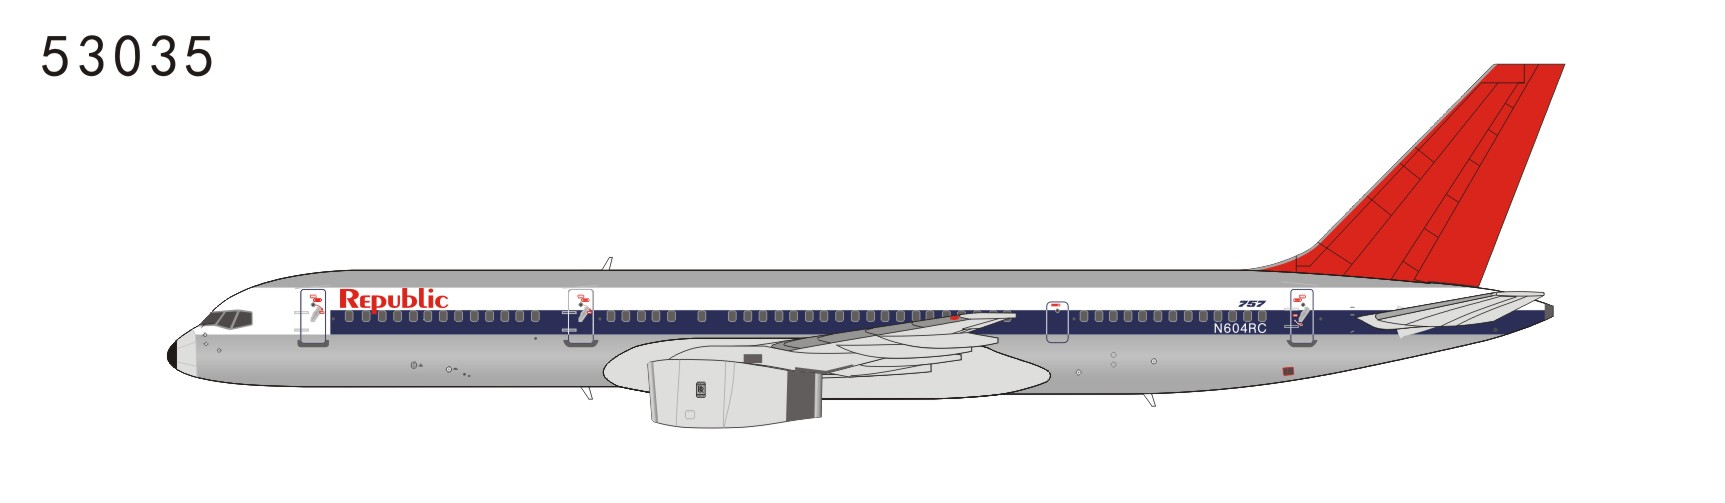 Republic Airlines 757-200 N604RC NW scheme, polished, red tail (1:400)